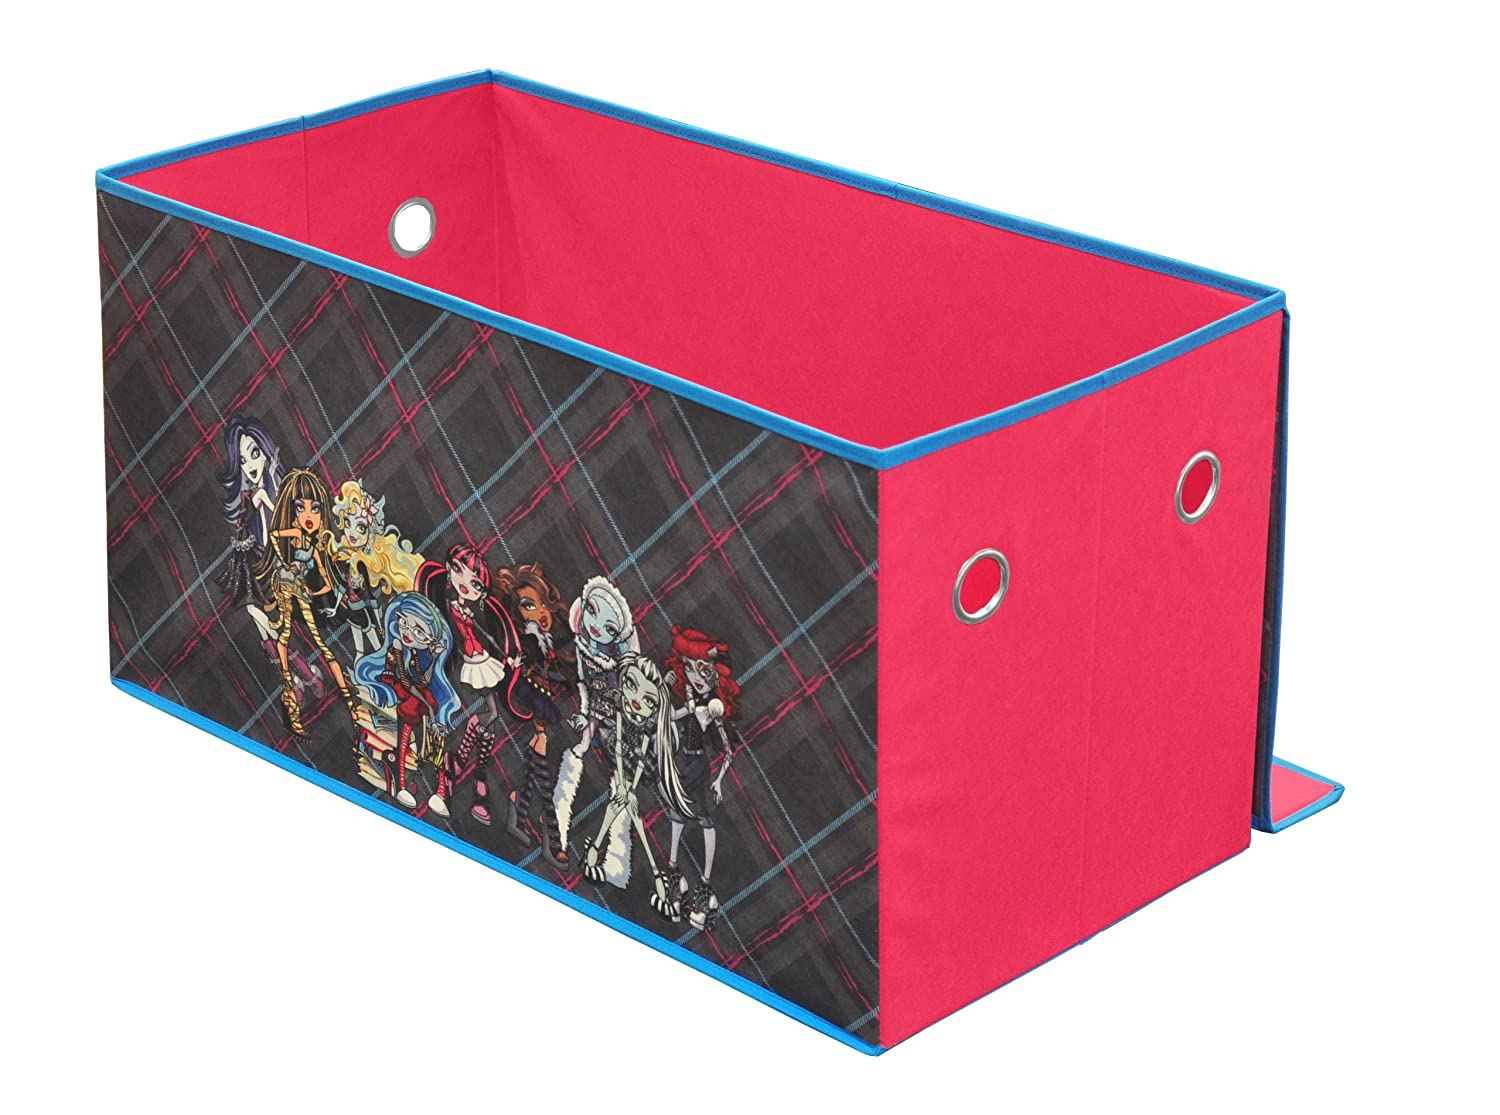 Amazon.com: Mattel Monster High Collapsable Storage Trunk: Toys U0026 Games